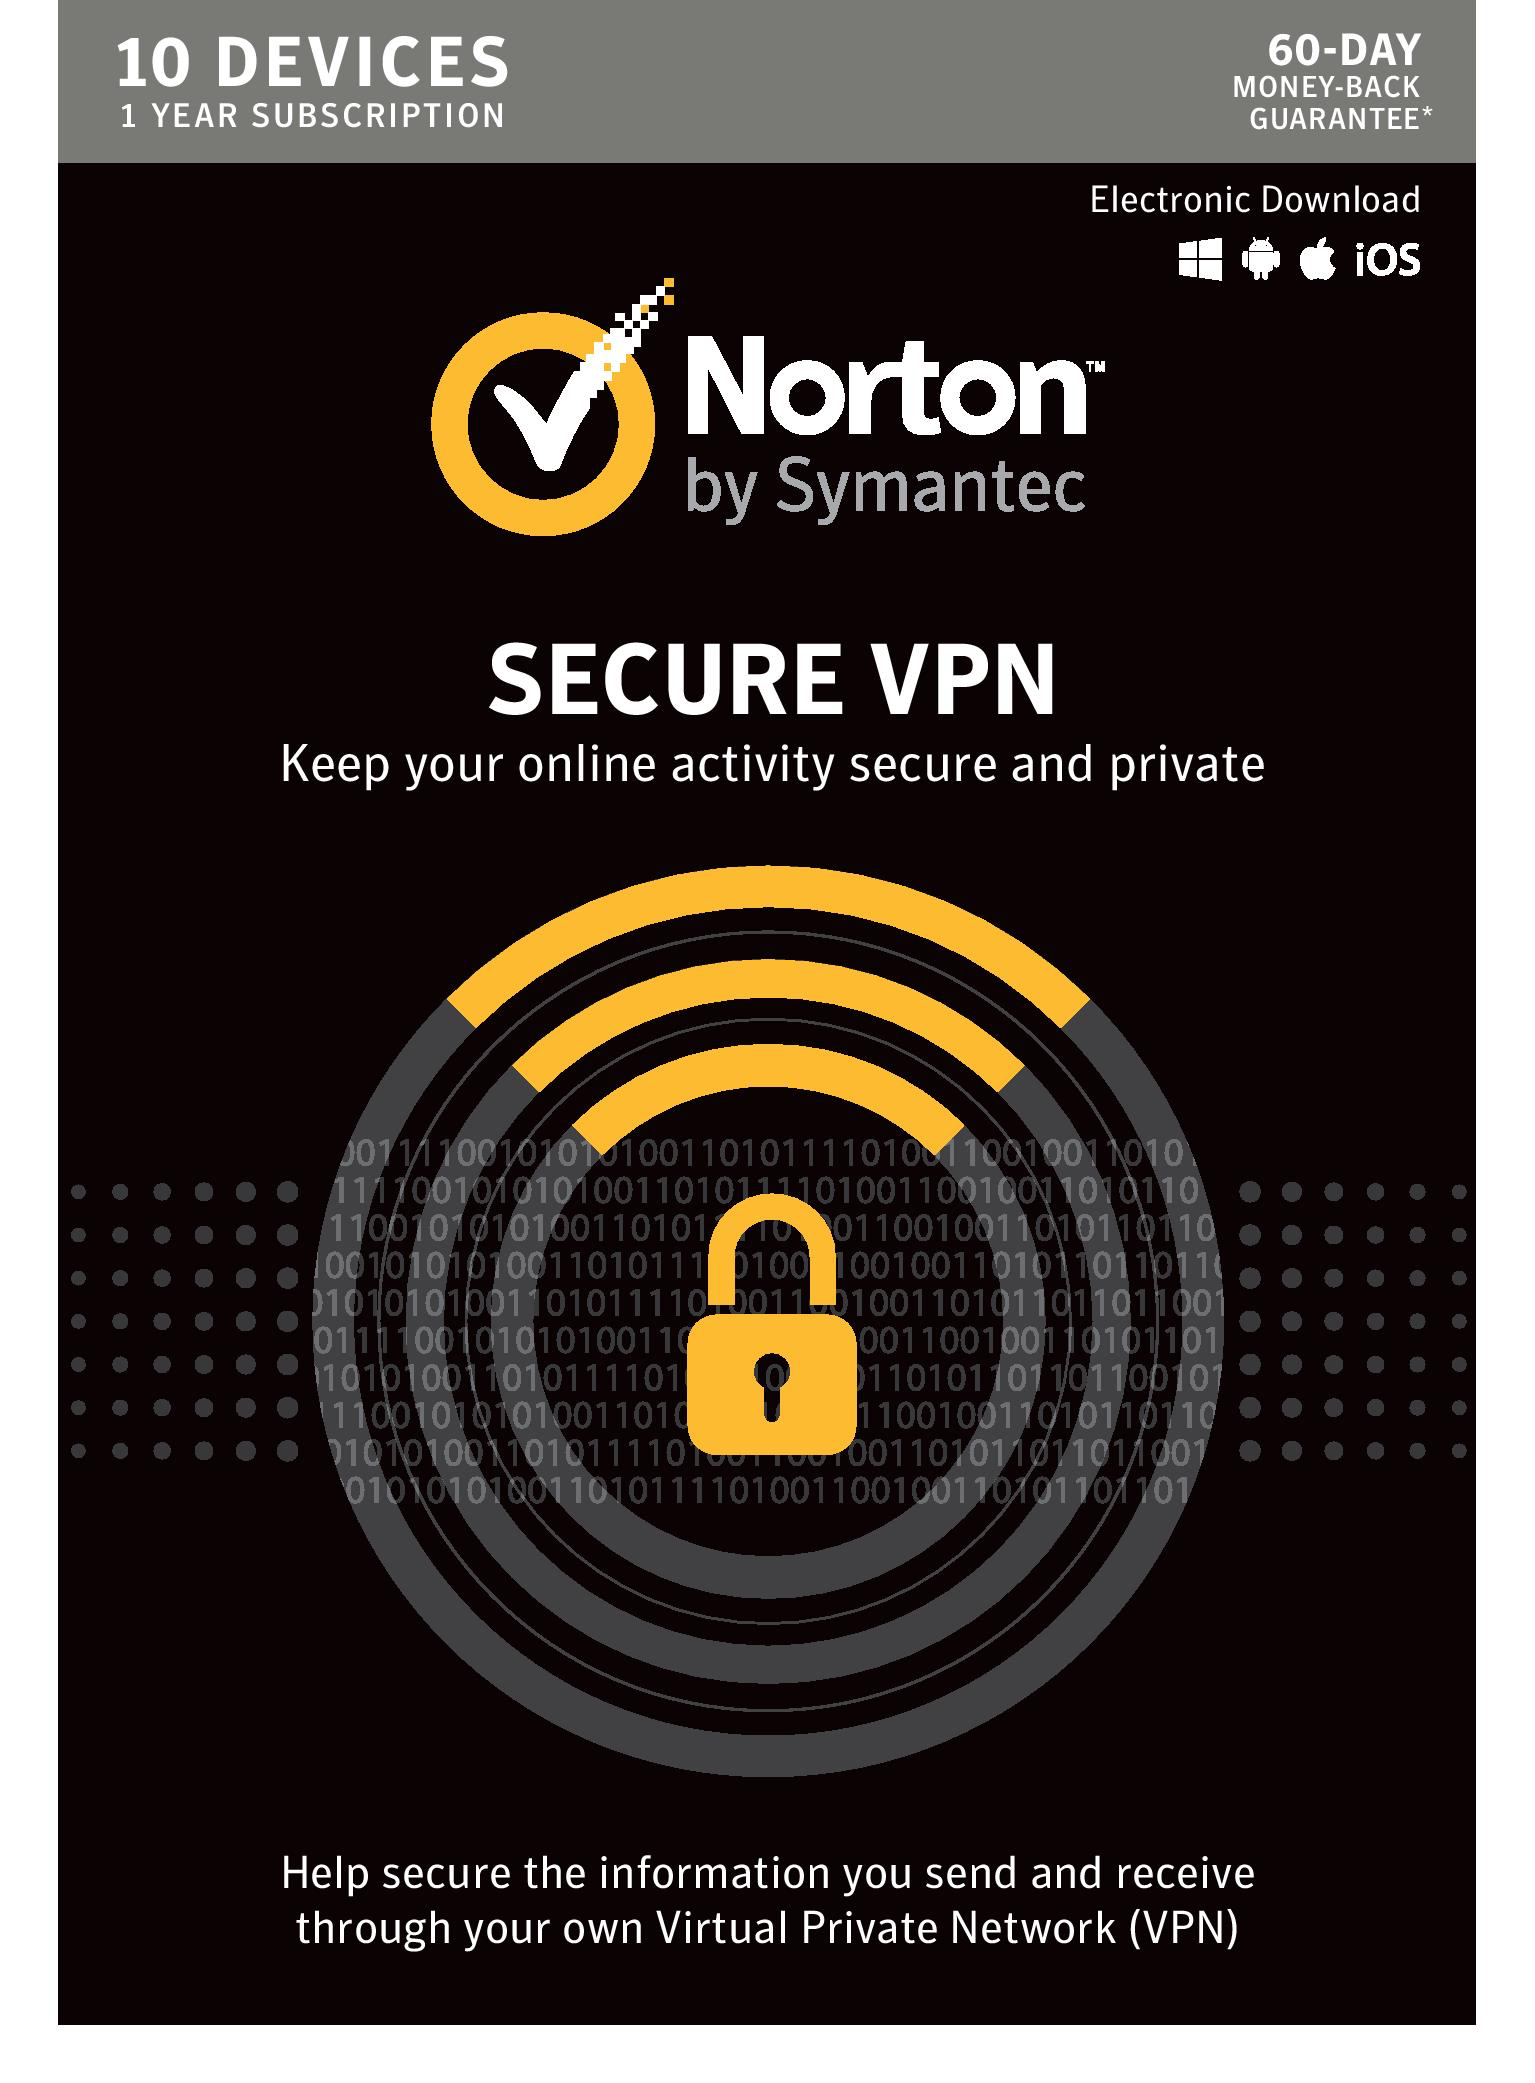 Norton WiFi Privacy VPN - 10 Devices